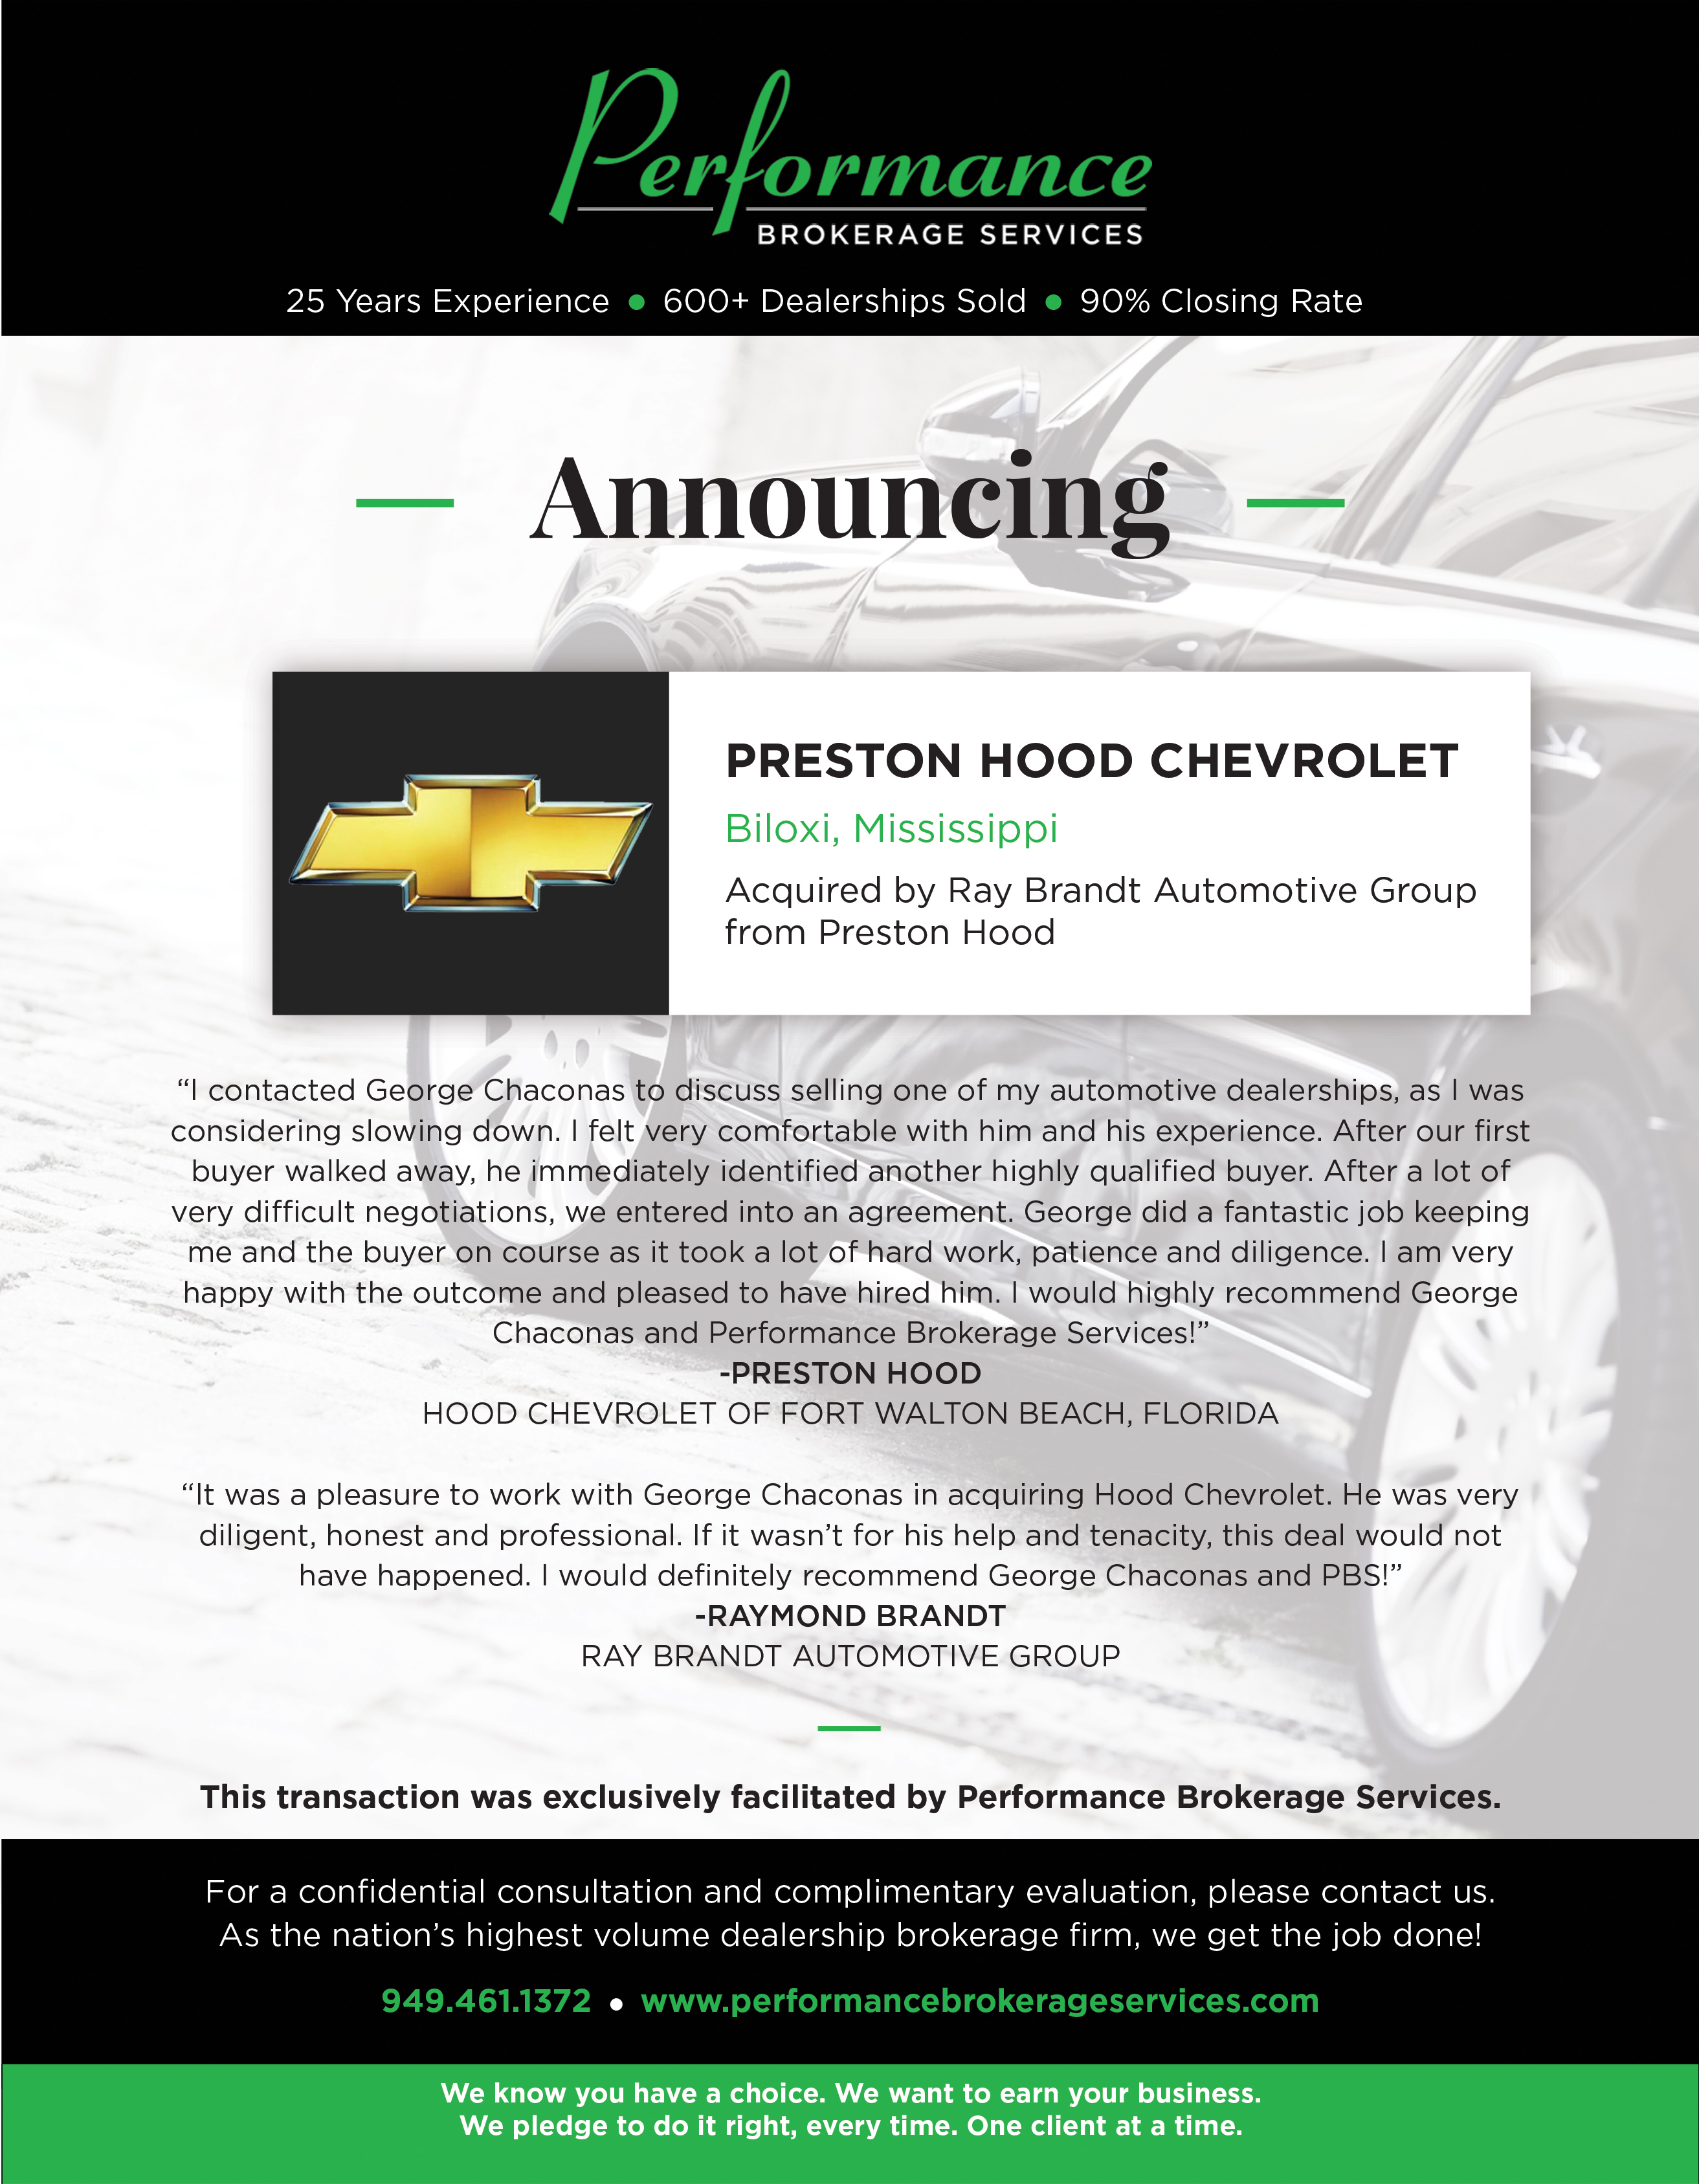 preston hood chevrolet of biloxi mississippi sells with help of auto dealership broker performance brokerage services www prweb com